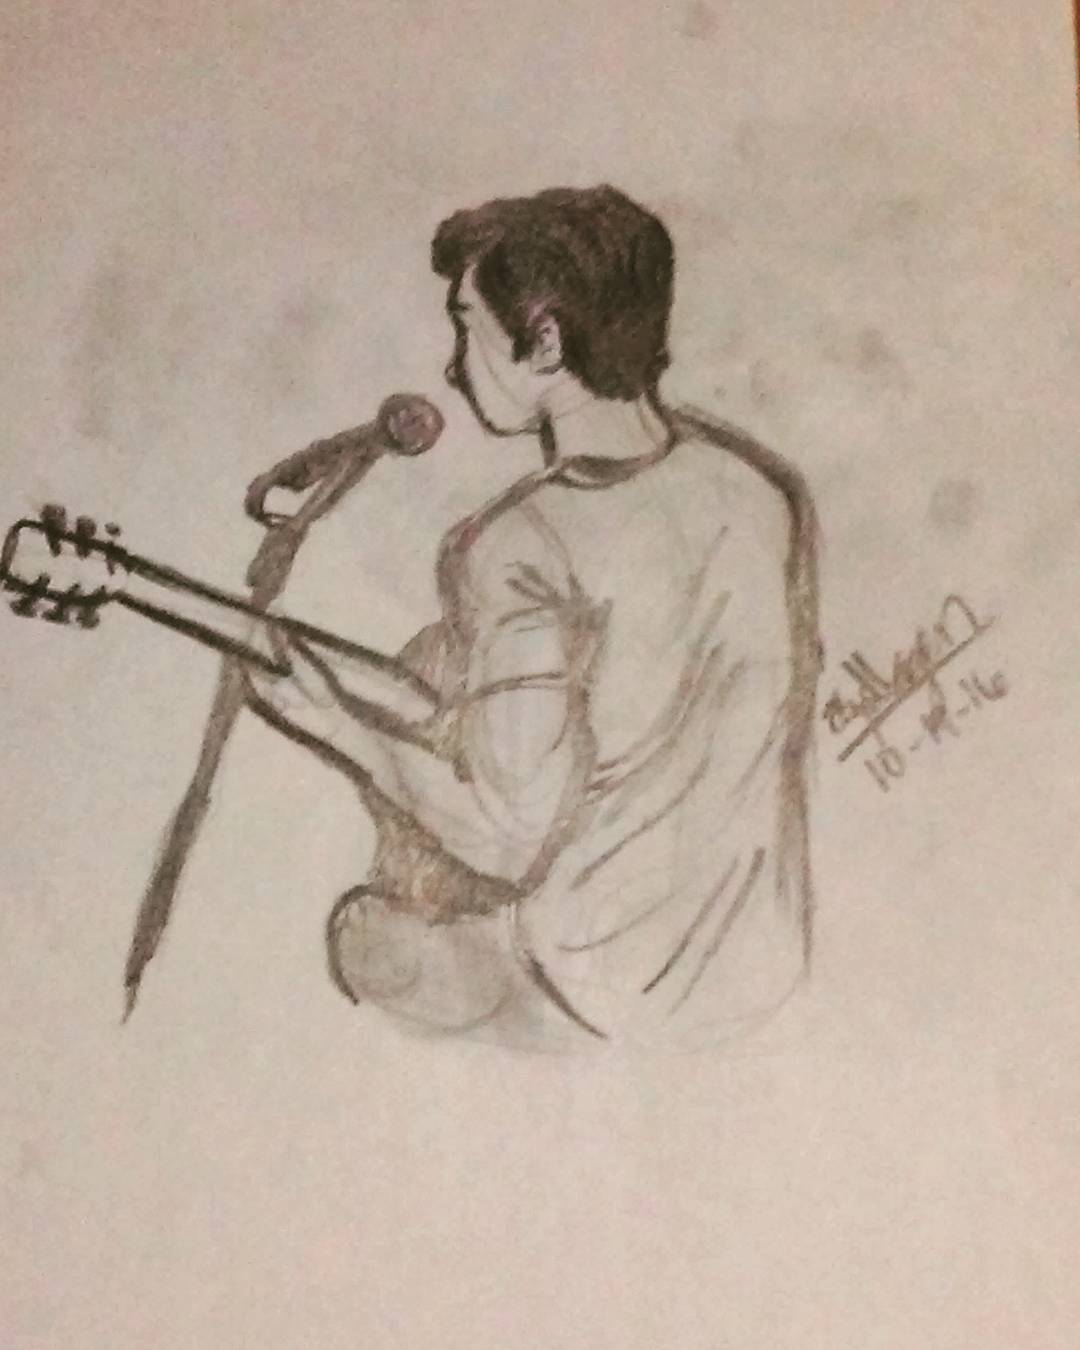 1080x1350 Boy With Guitar. Singer. Musician. Based On Joey Barreiro. Pencil